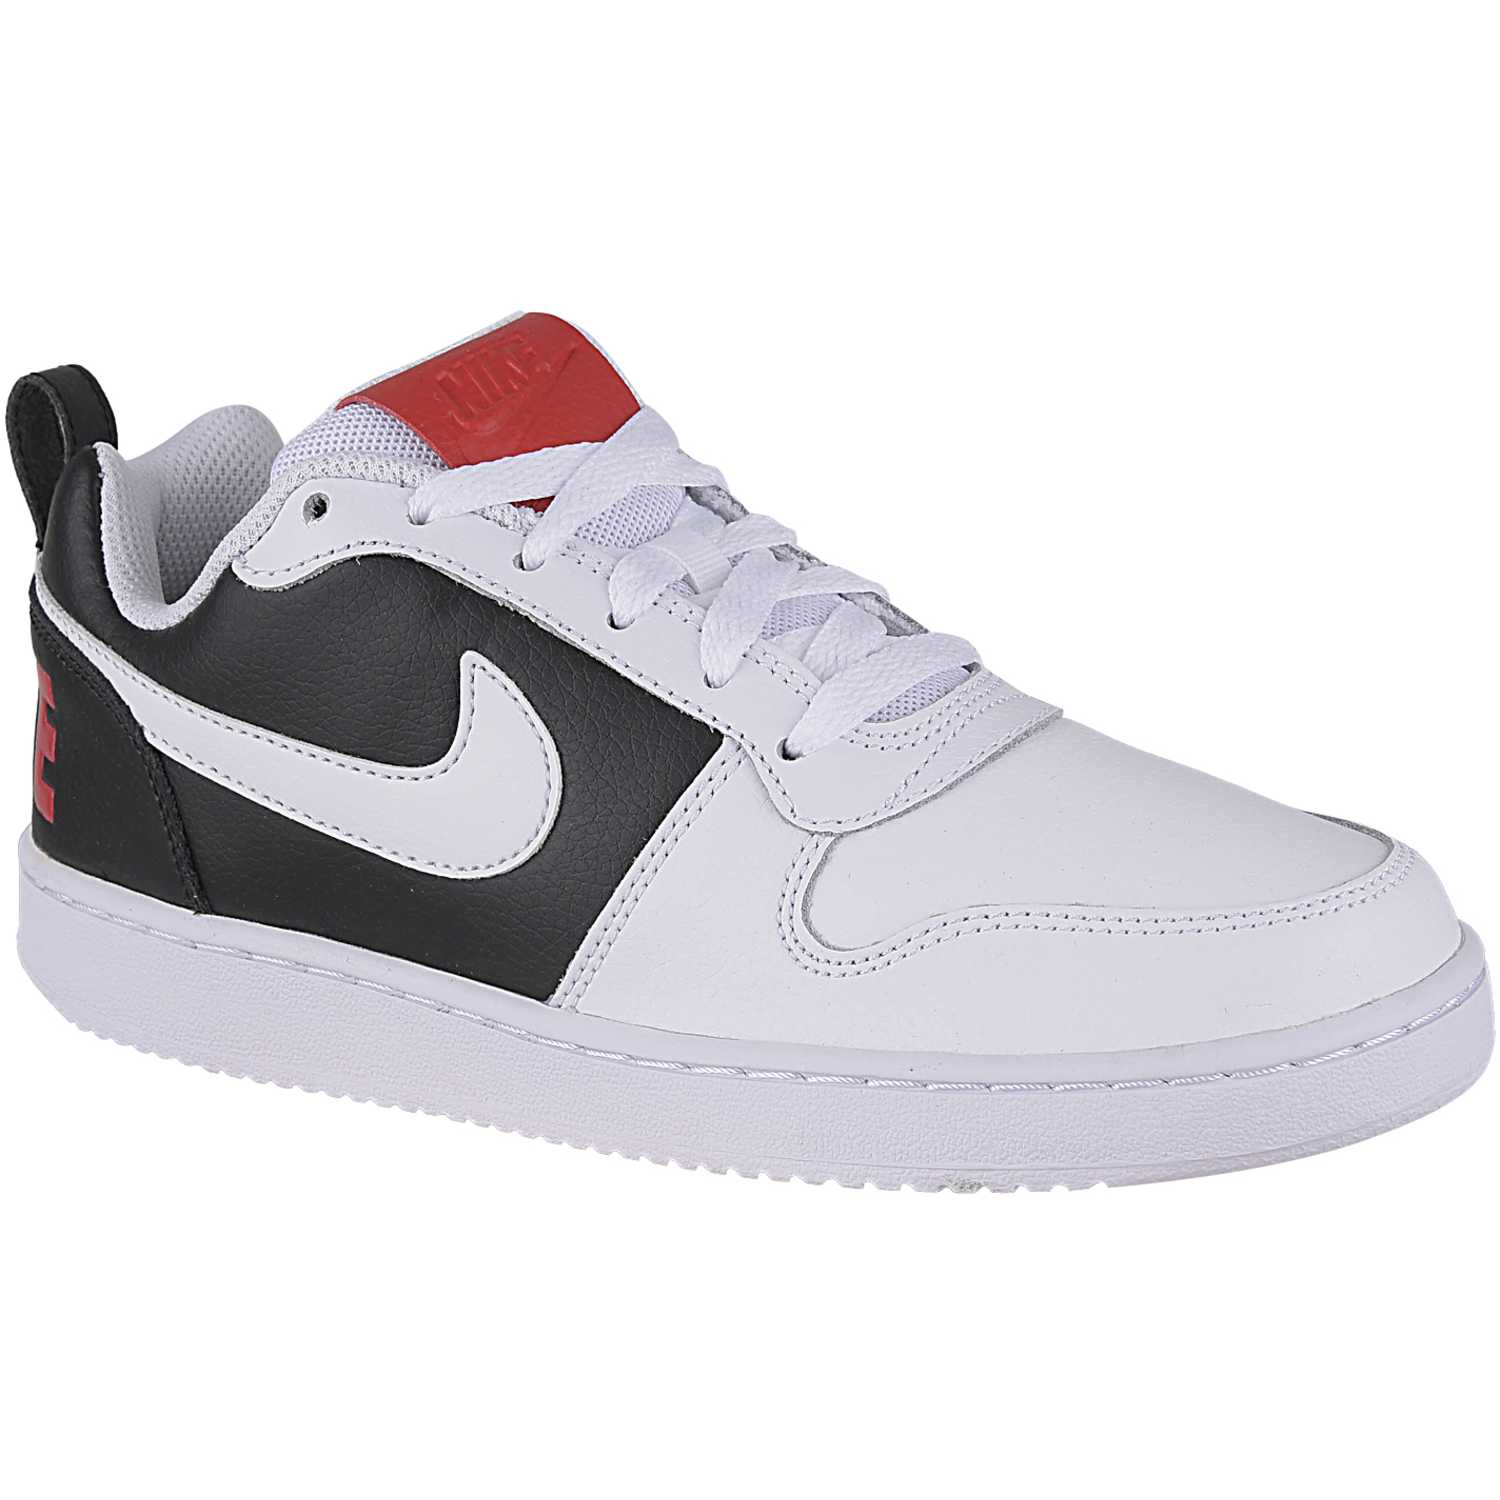 ea154a15a84 Zapatilla de Mujer Nike Blanco / negro wmns nike court borough low ...